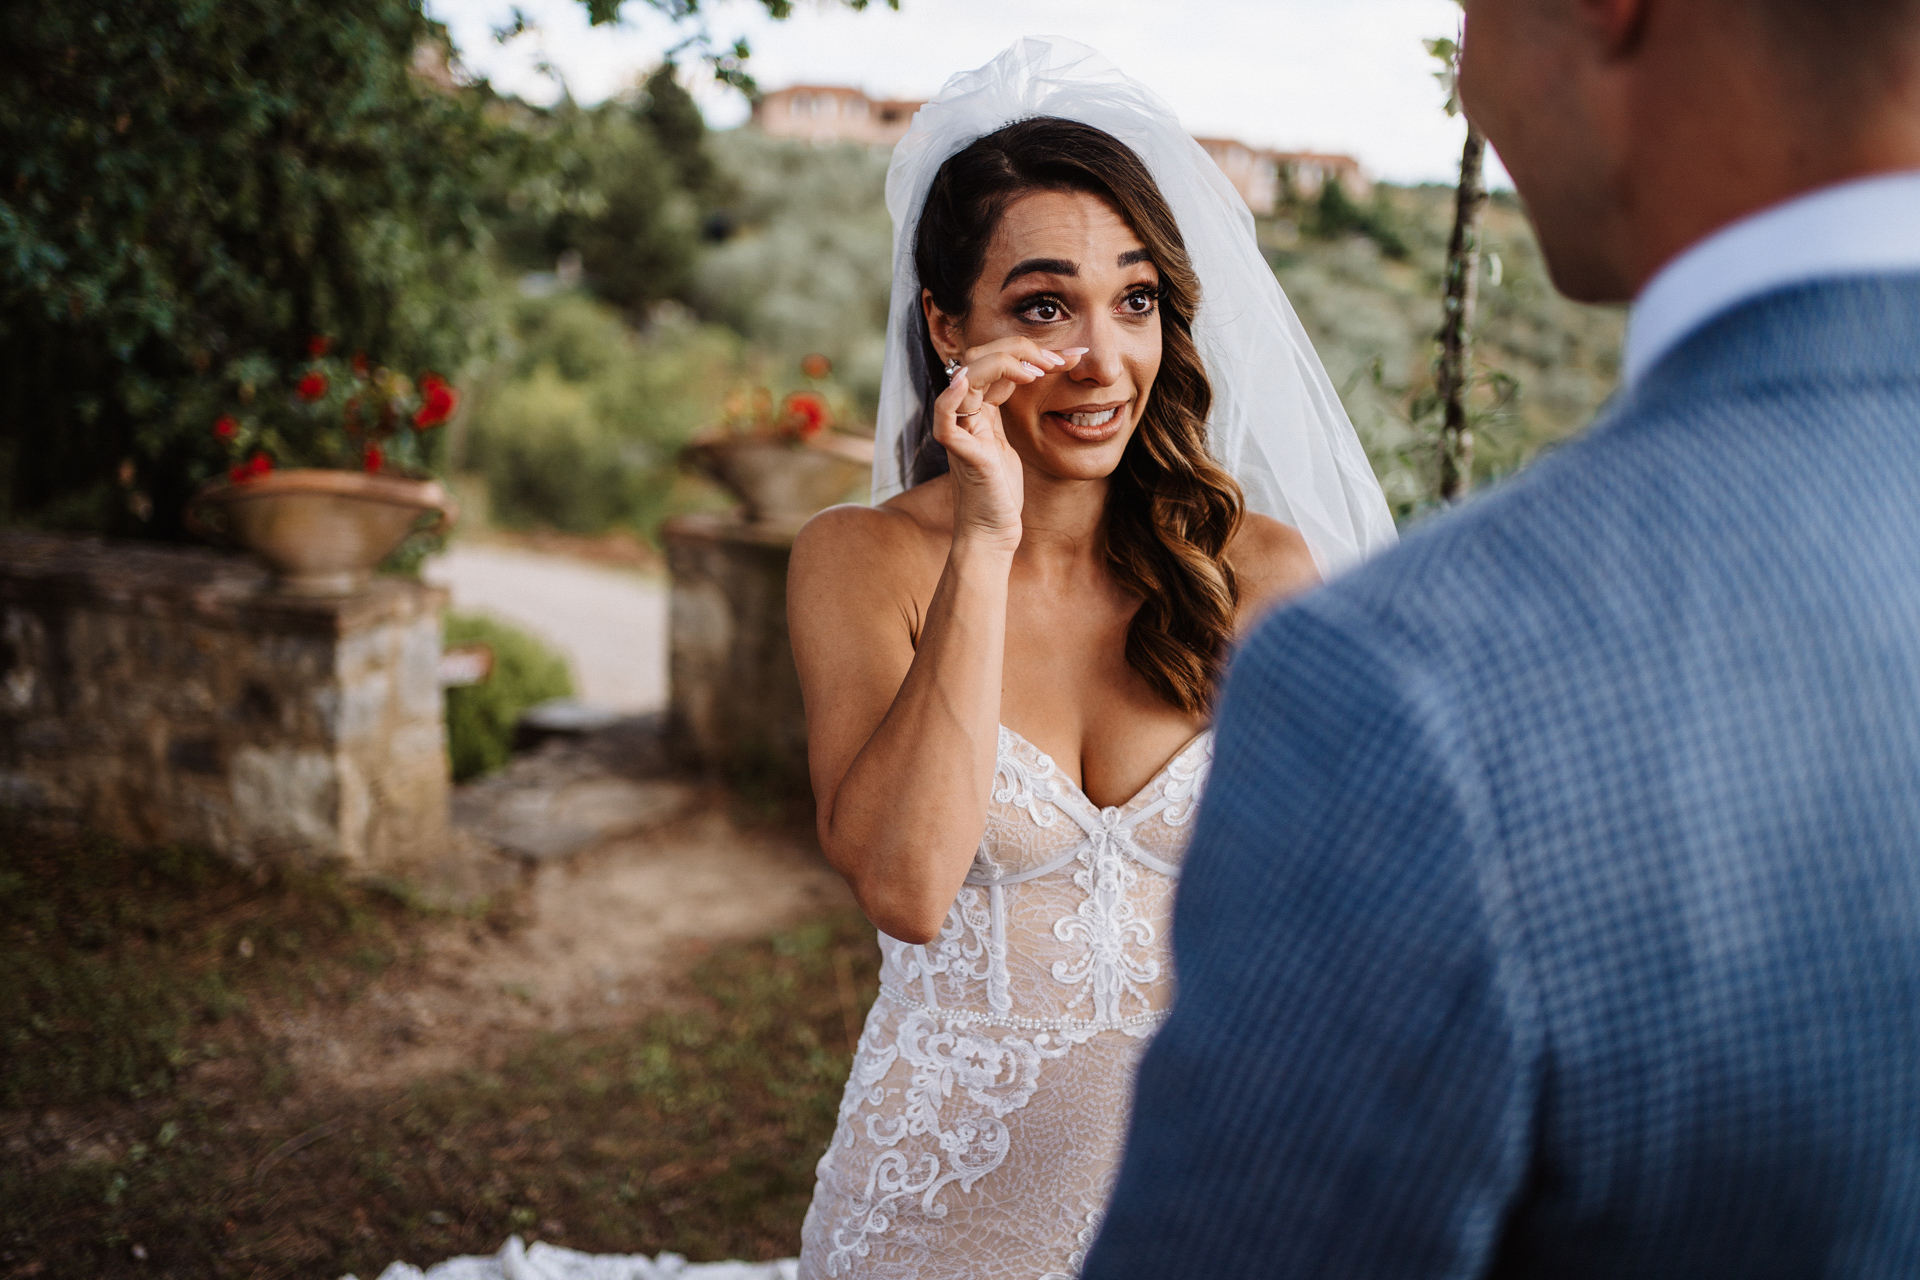 Outdoor Italy Elopement Ceremony Photography | The bride cries at the beautiful words of the groom